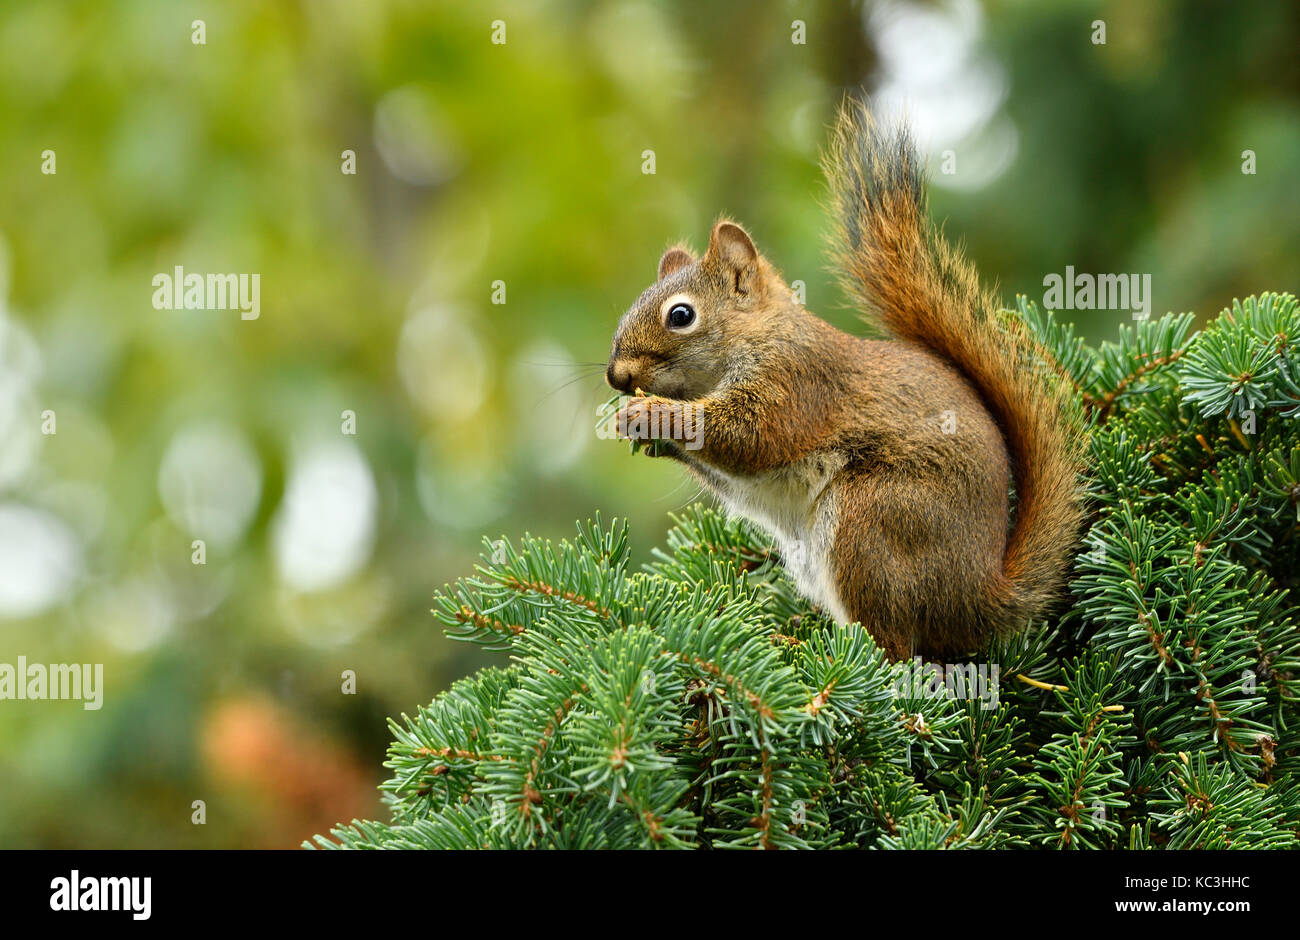 A red squirrel Tamiasciurus hudsonicus; sitting on on  a spruce tree branch eating the fresh green spruce needles - Stock Image